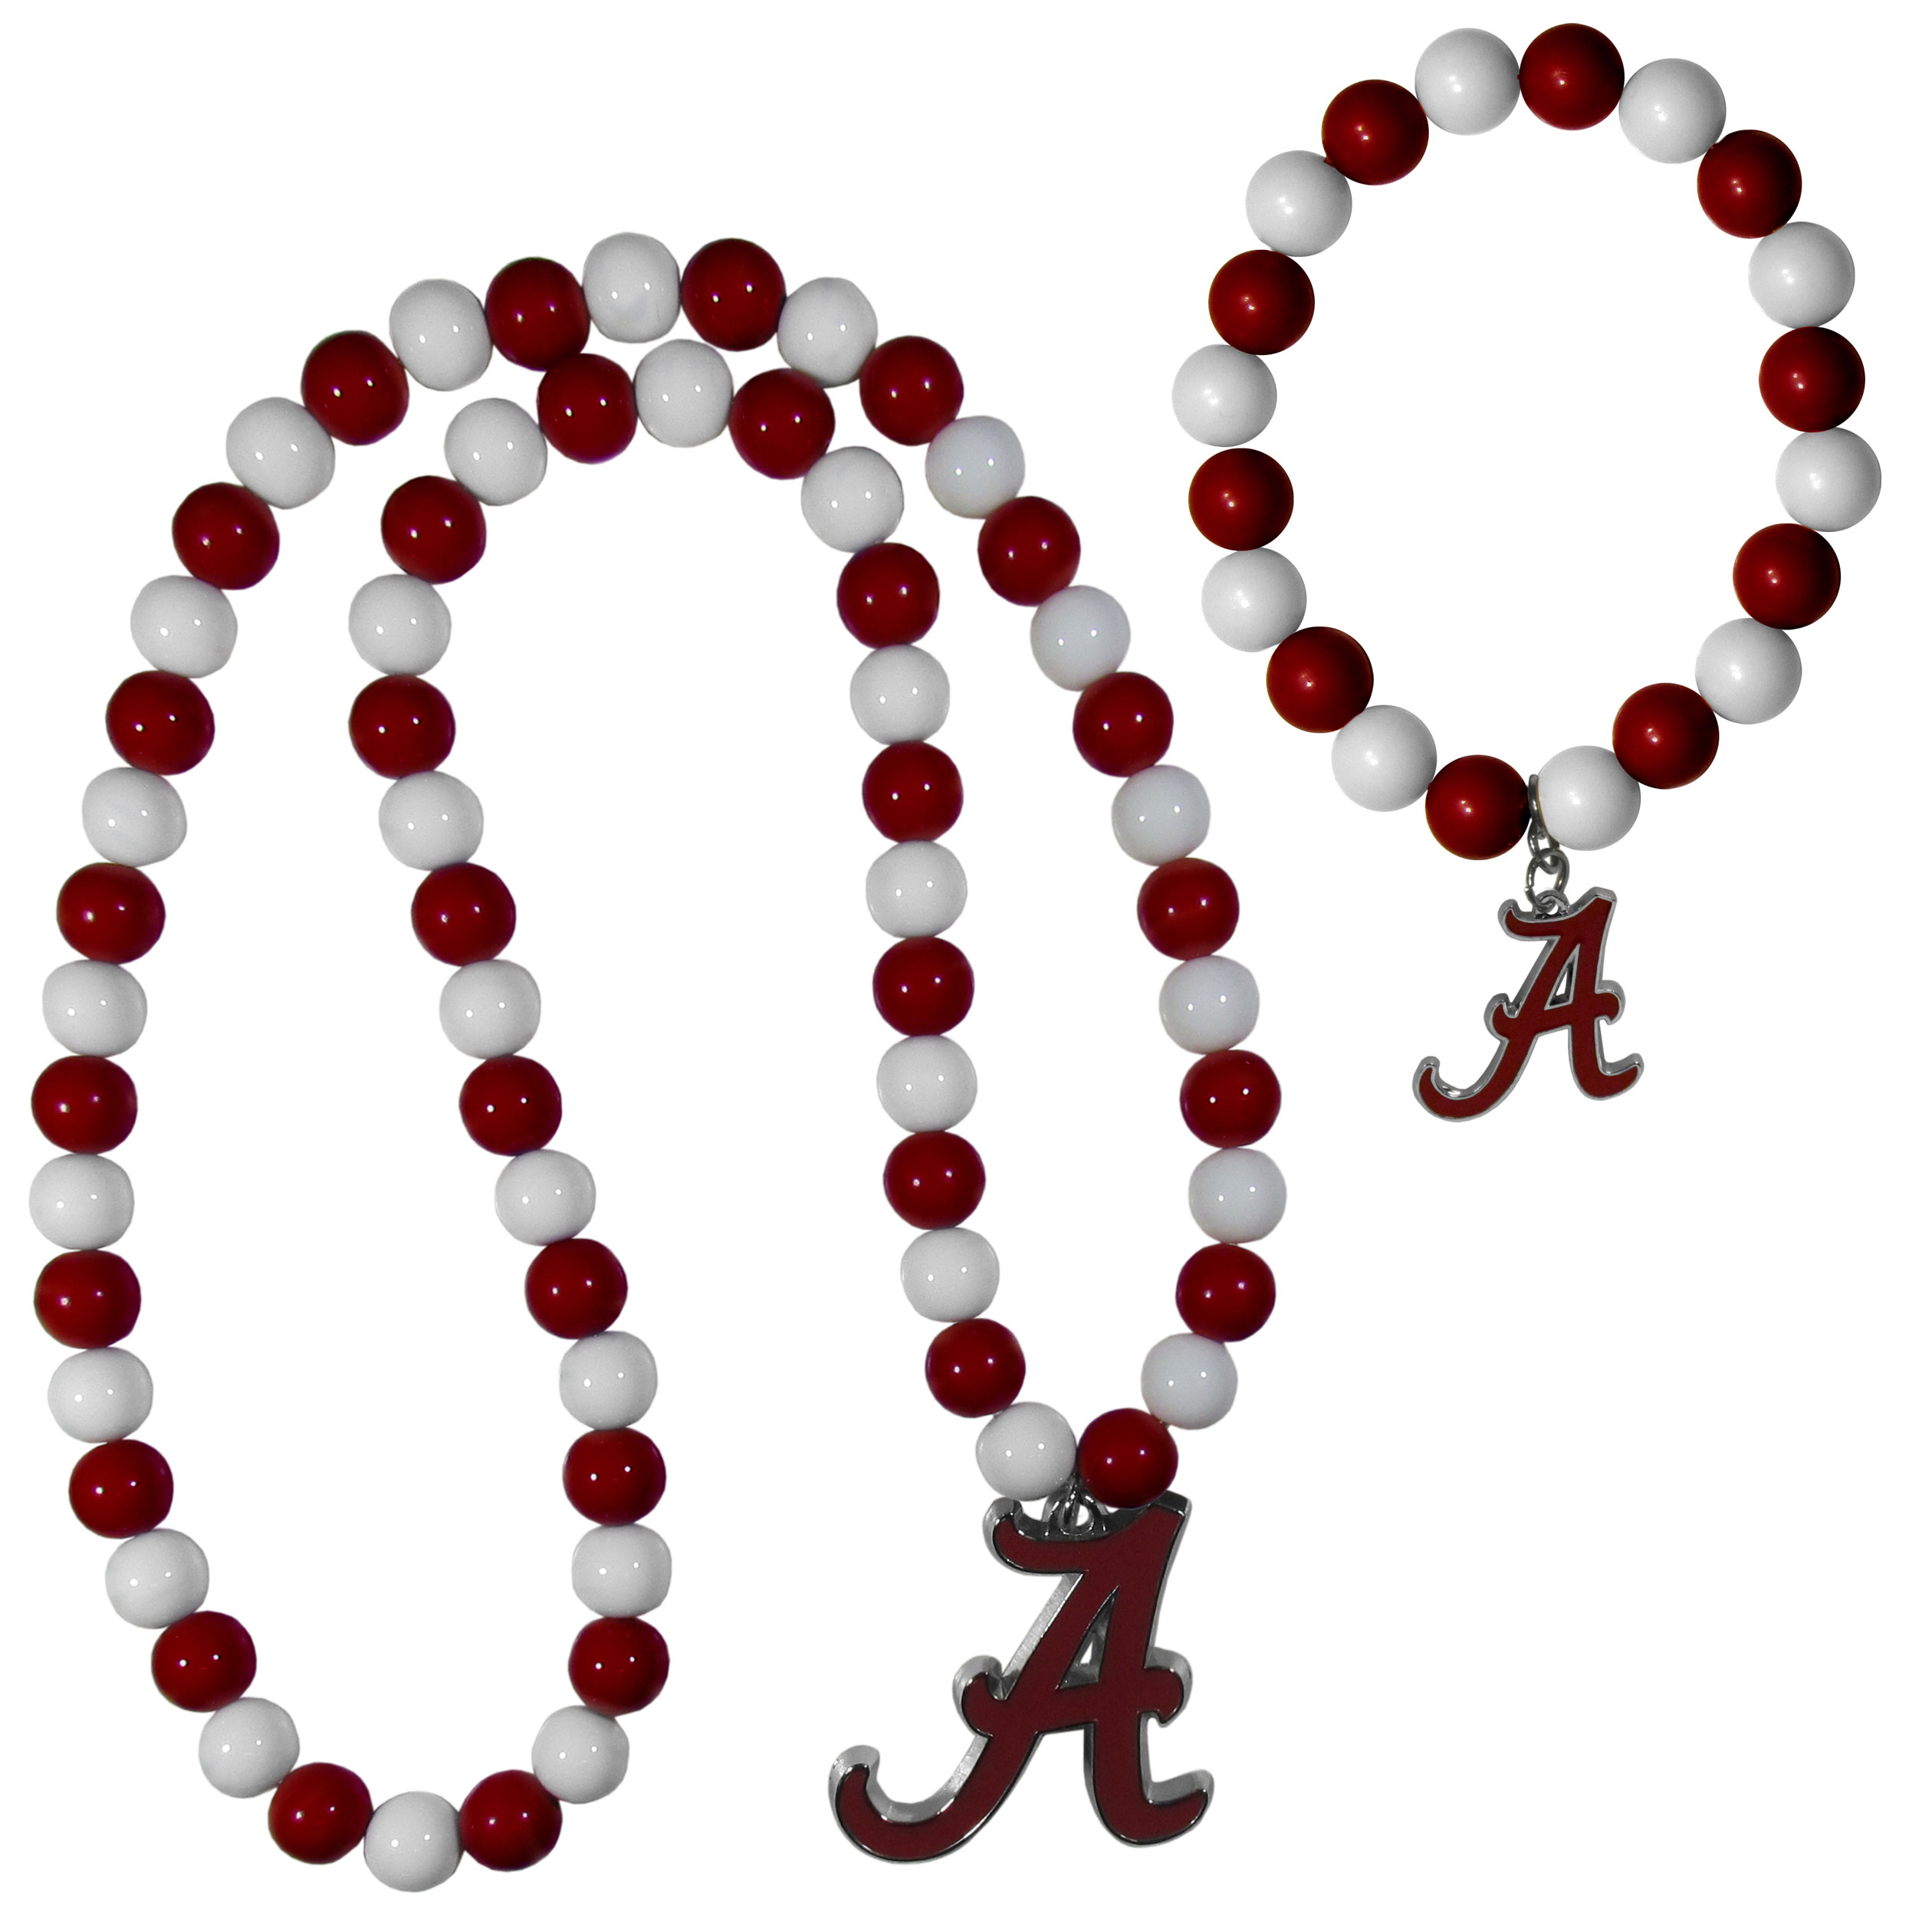 Alabama Crimson Tide Fan Bead Necklace and Bracelet Set - These fun and colorful Alabama Crimson Tide fan bead jewelry pieces are an eyecatching way to show off your team spirit. The striking necklace is a 24 inch string of alternating team colored beads with a large team pendant. The mathcing bracelet has alternating team colored beads on a stretch cord and features a matching team charm.